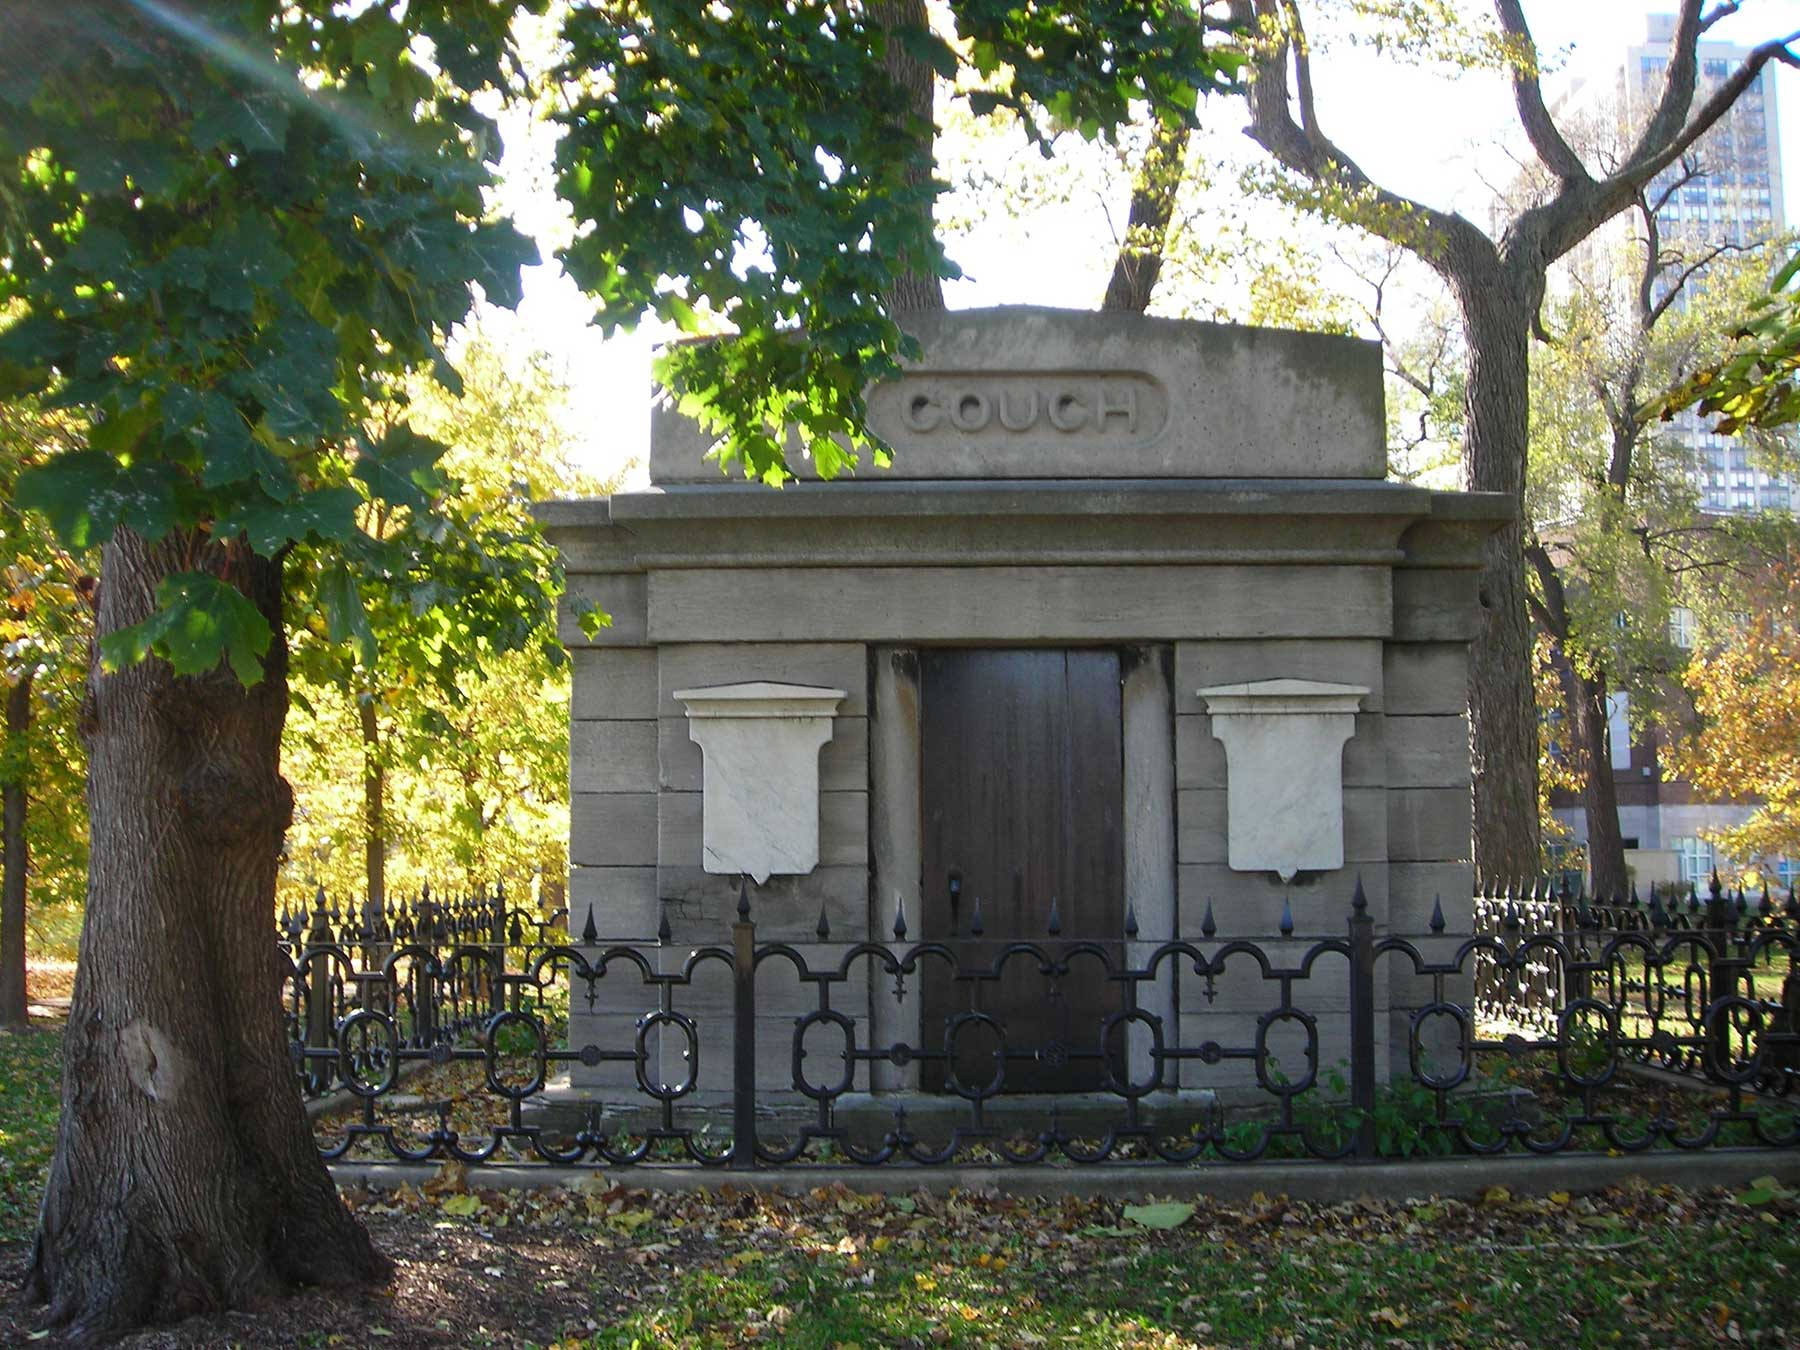 The Couch Tomb is one of the few above-ground reminders of Lincoln Park's beginnings as a cemetery. Photo by Julia Bachrach.